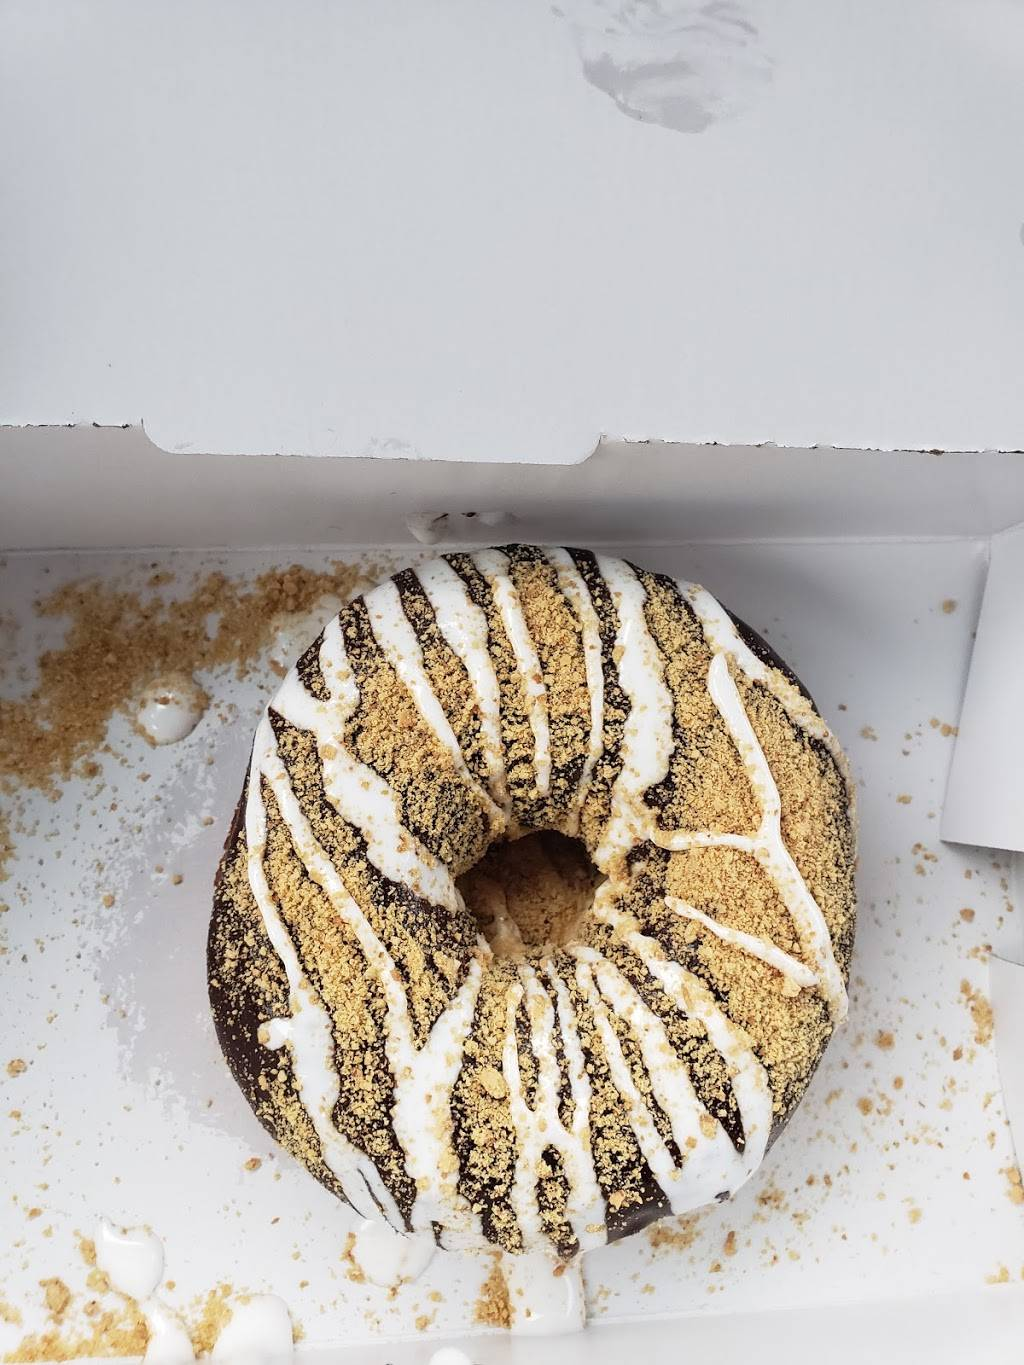 Duck Donuts - Tilghman Square | cafe | 4608 Broadway, Allentown, PA 18104, USA | 6106283636 OR +1 610-628-3636